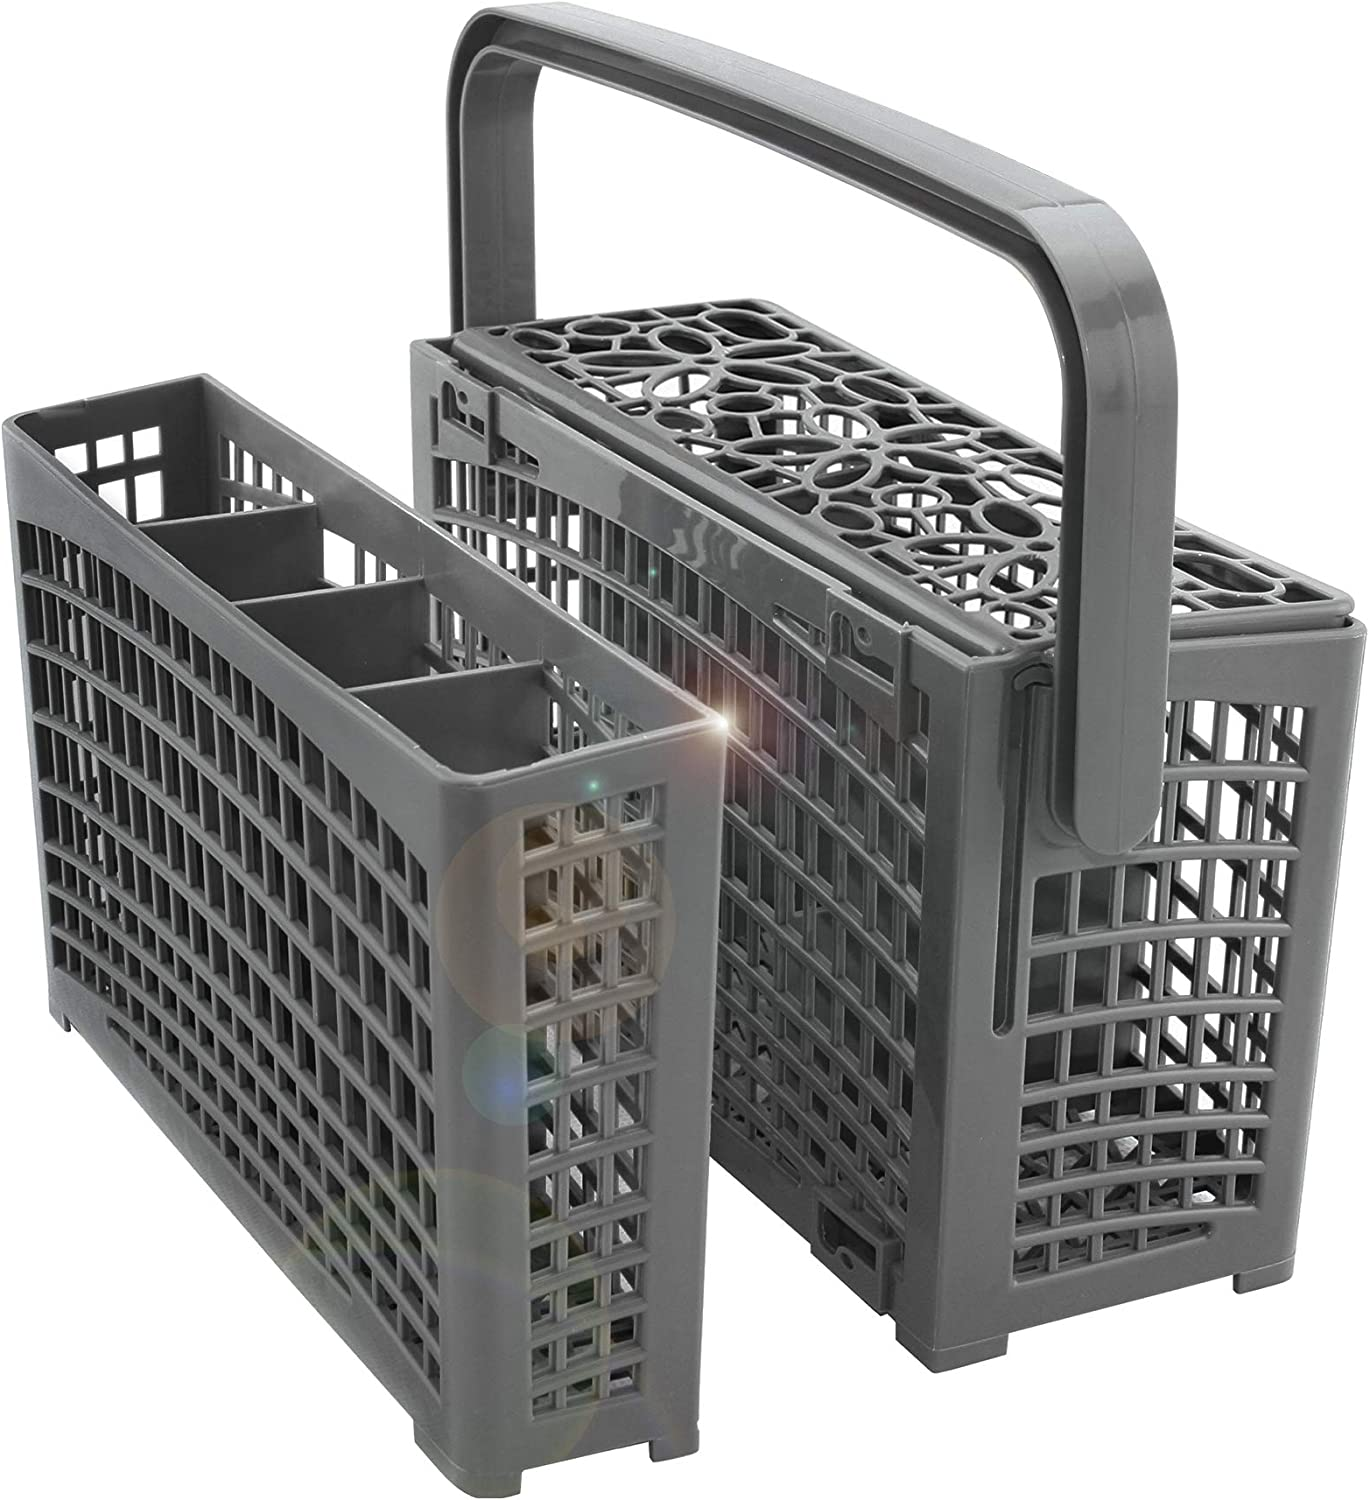 Dinnerware Utensil Basket Compatible with Samsung Bosch LG Frigidaire KitchenAid Whirlpool,Gray Nuovoware Dishwasher Cutlery Basket Universal Divided Detachable 2-in-1 Silverware Replacement Basket